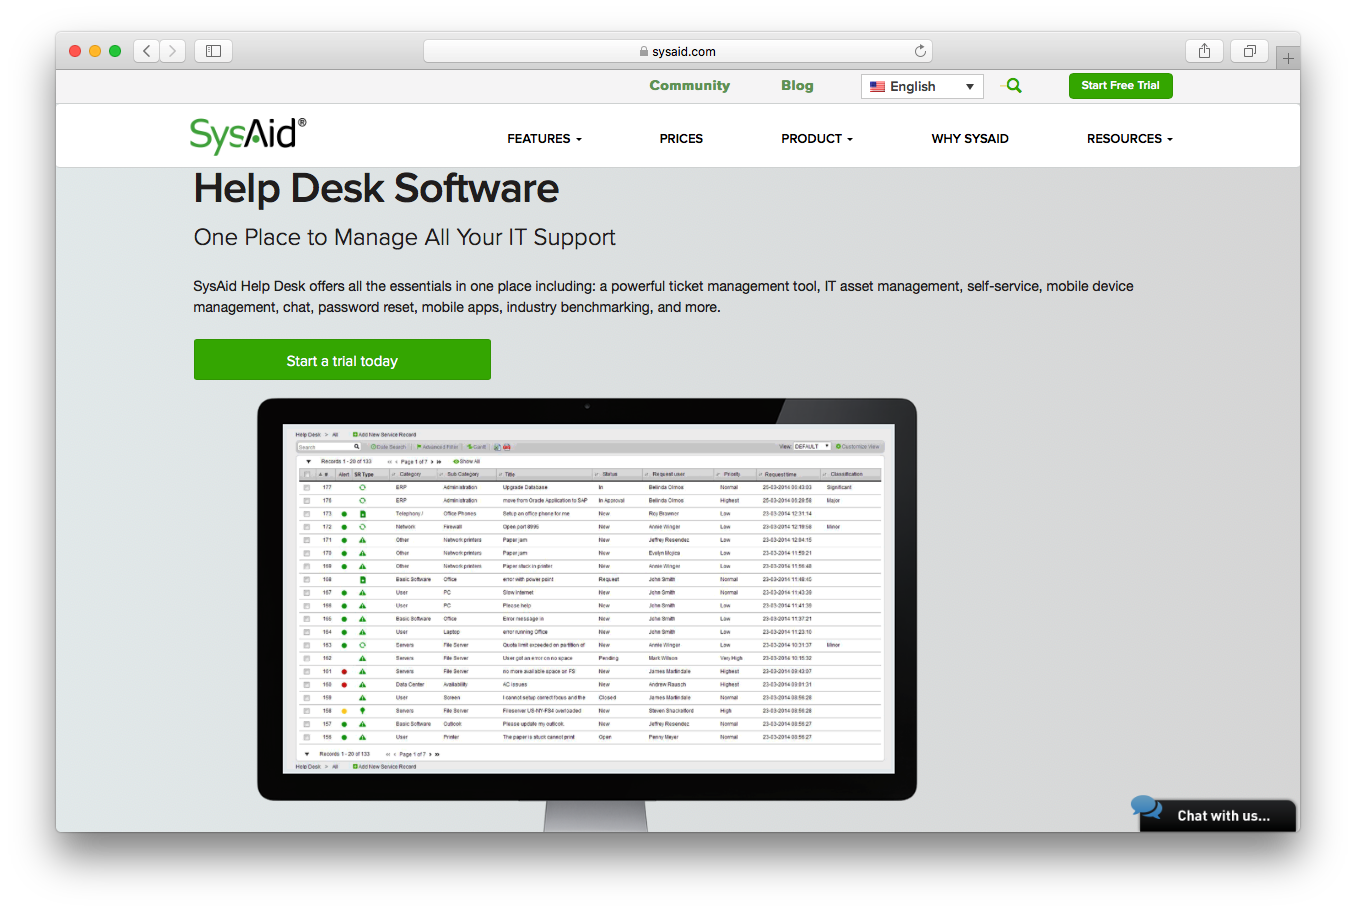 SysAid features screenshot help desk software it support ticket management tool it set management self service mobile device chat password reset apps industry benchmarking